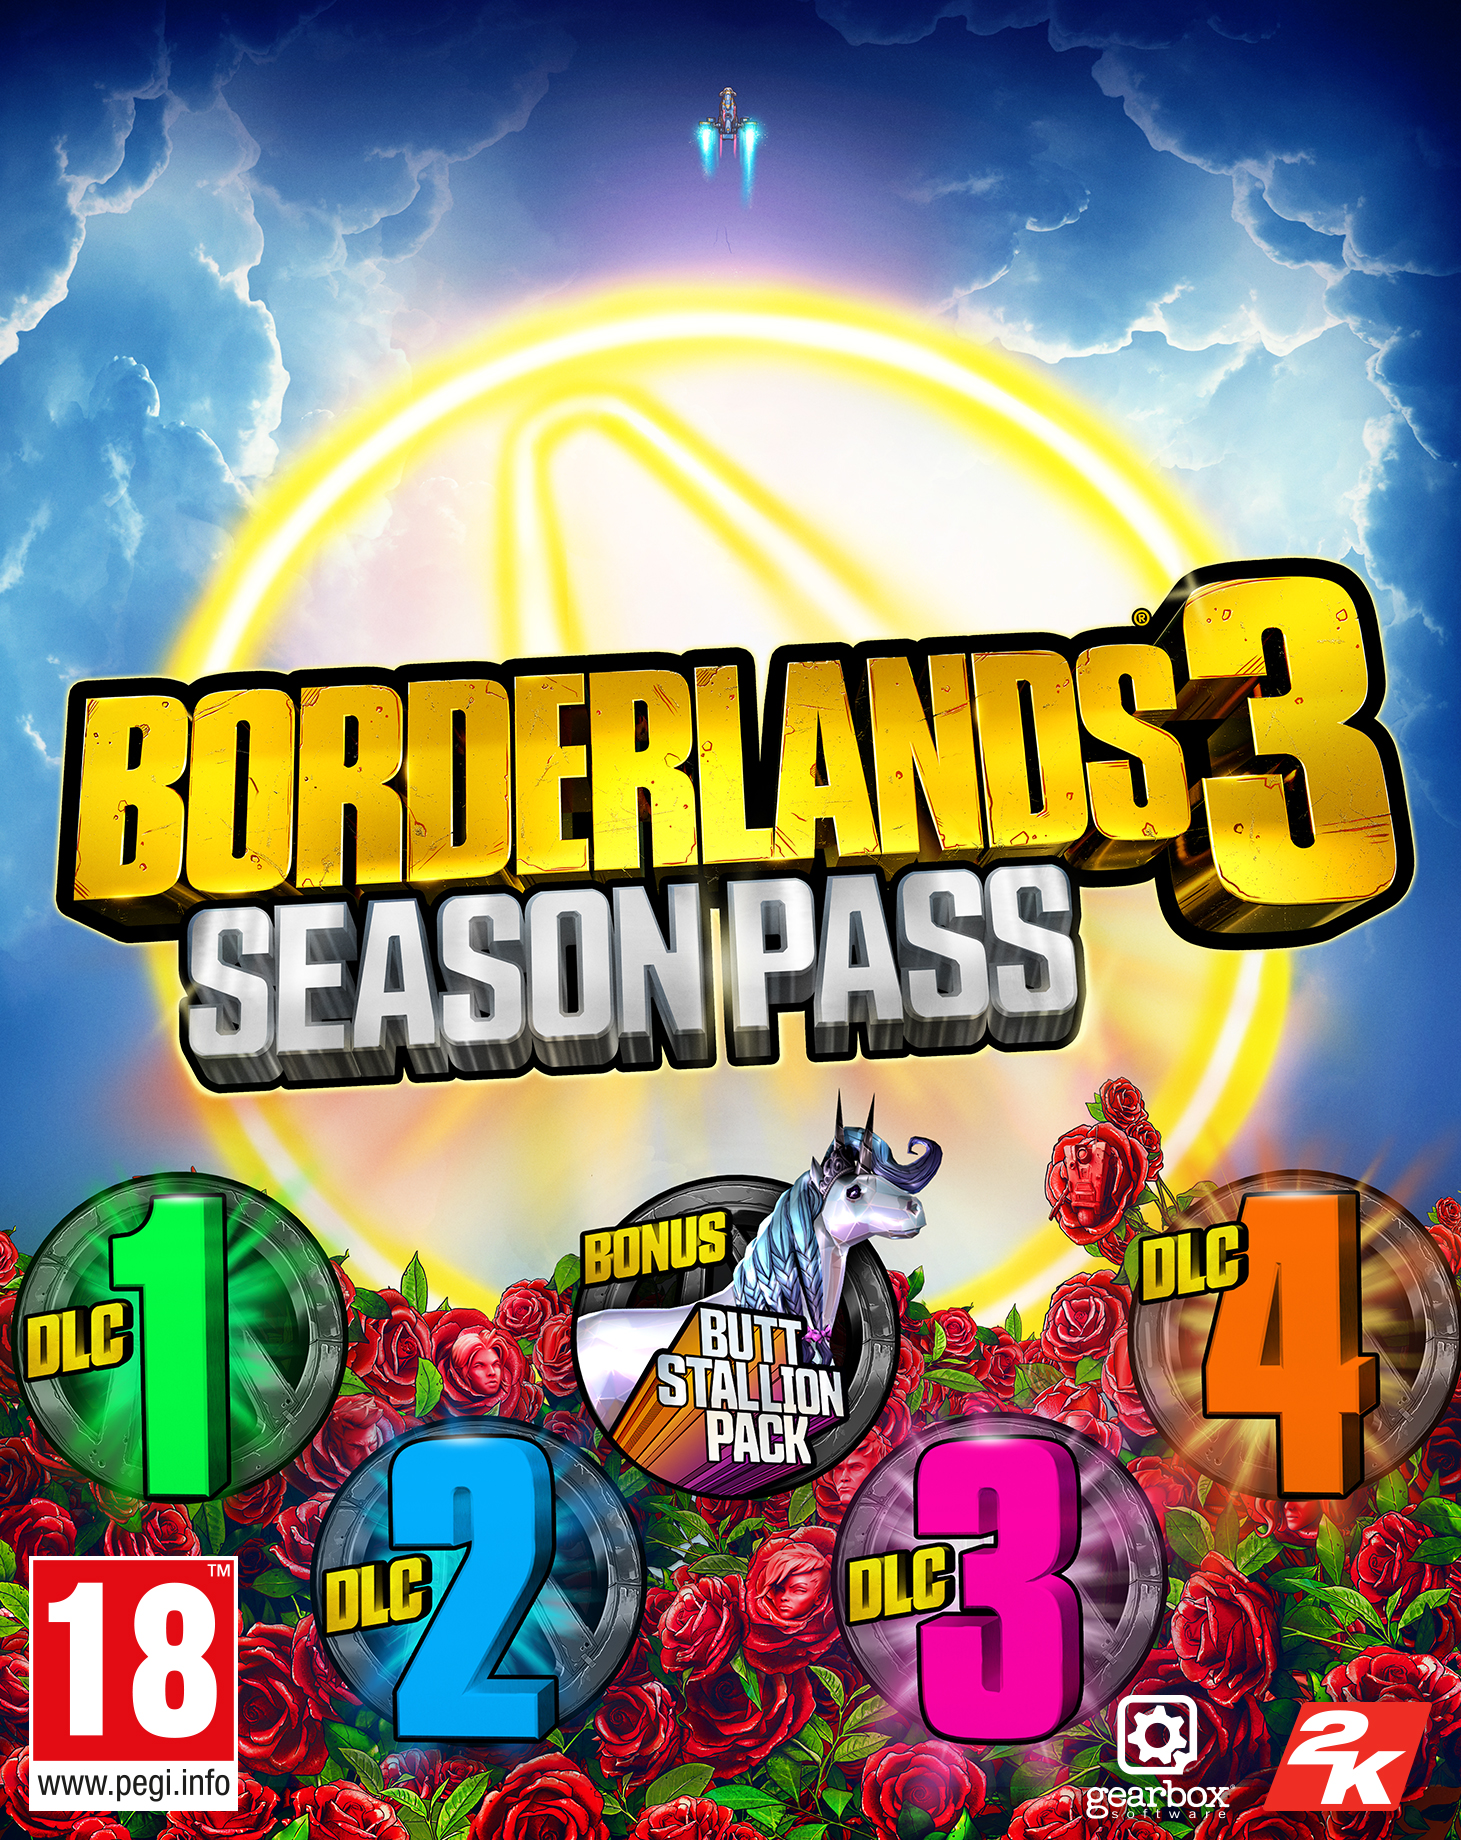 Borderlands 3 Season Pass (PC) Klíč Epic Store (PC)